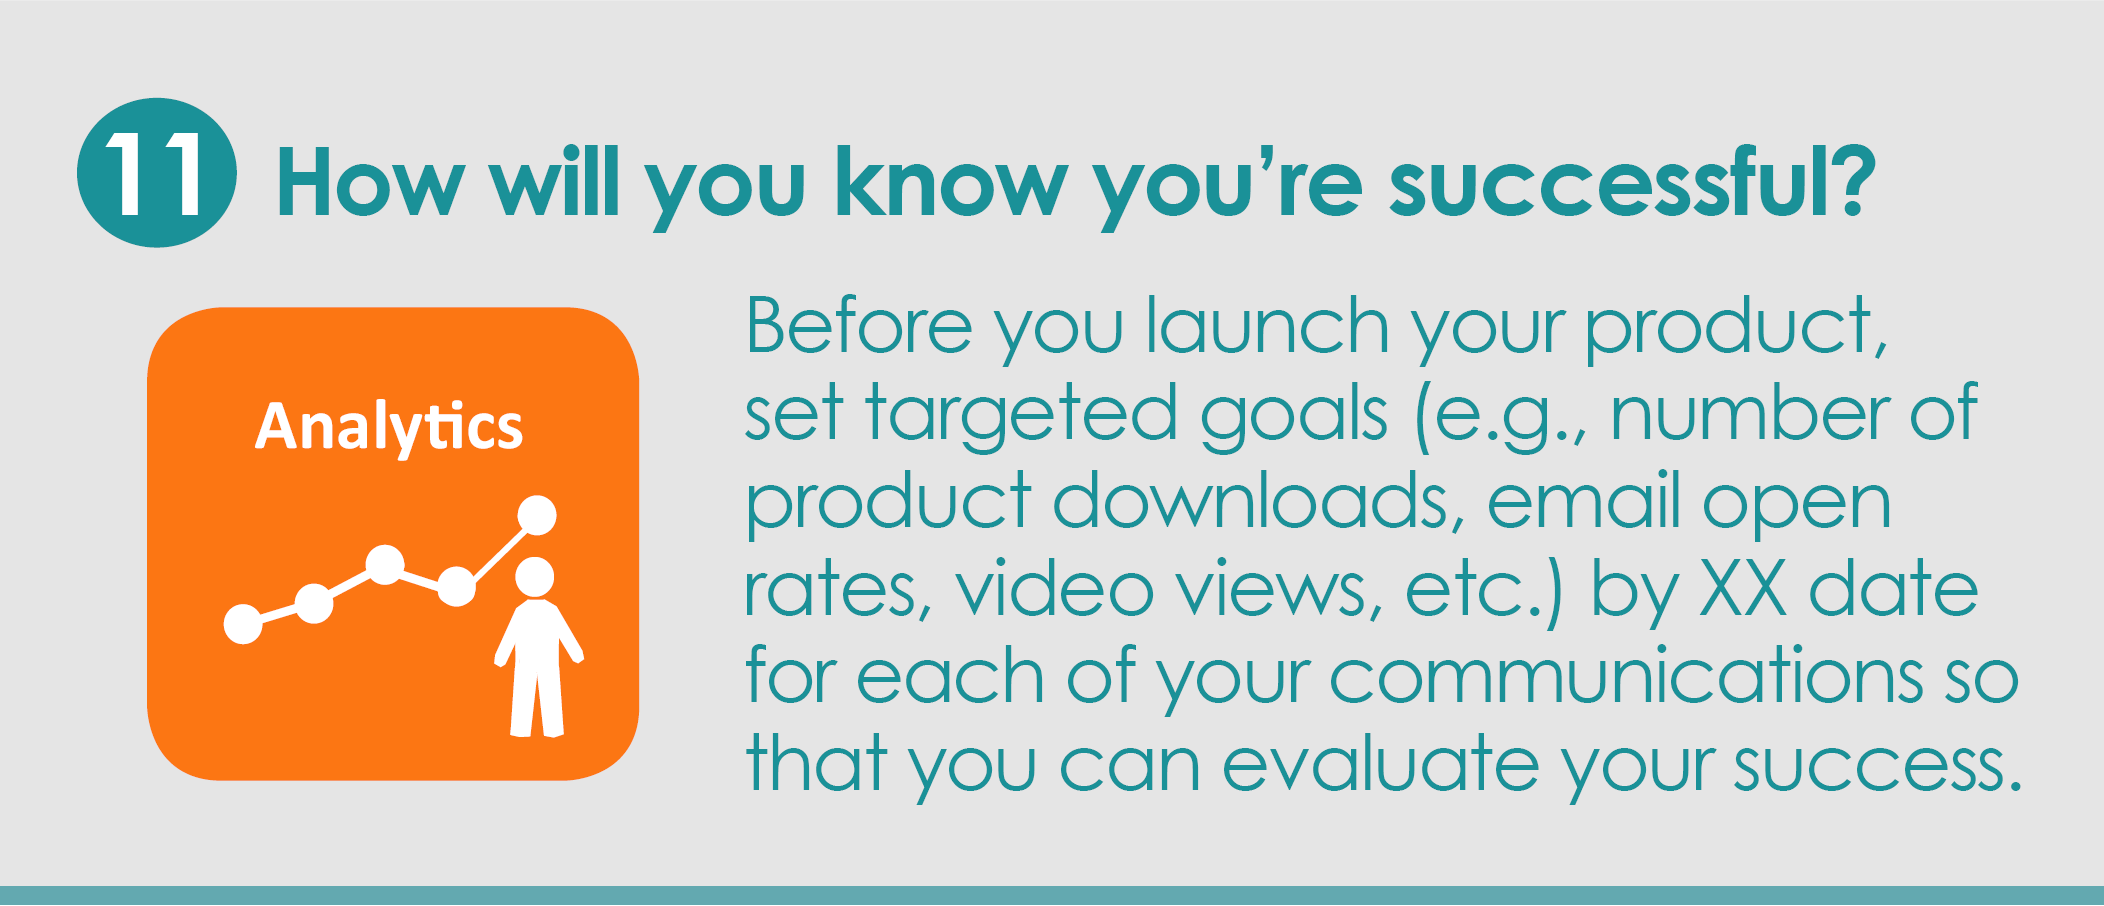 Step 11: How will you know you're successful? Before you launch your product, set targeted goals (e.g., number of product downloads, email open rates, video views, etc.) by XX date for each of your communications so that you can evaluate your success.